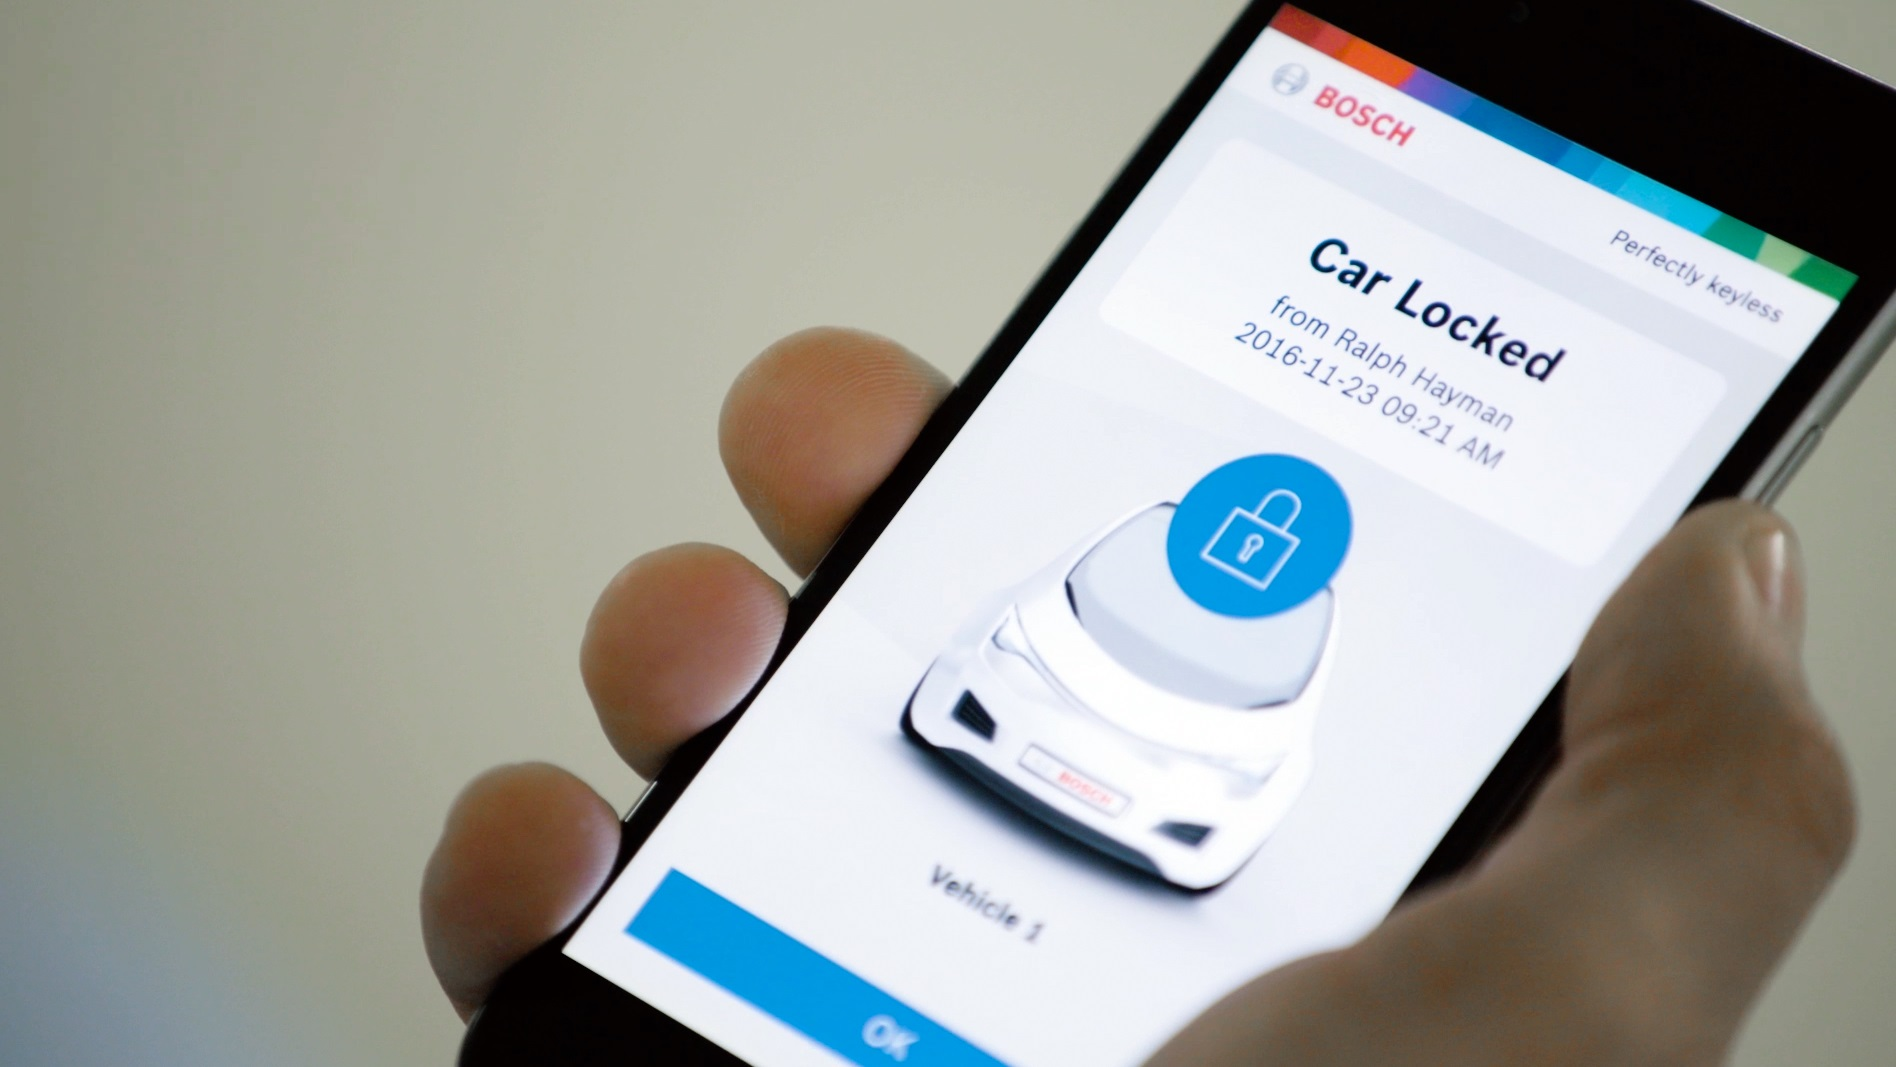 Bosch's Perfectly Keyless turns the smartphone into a car key.